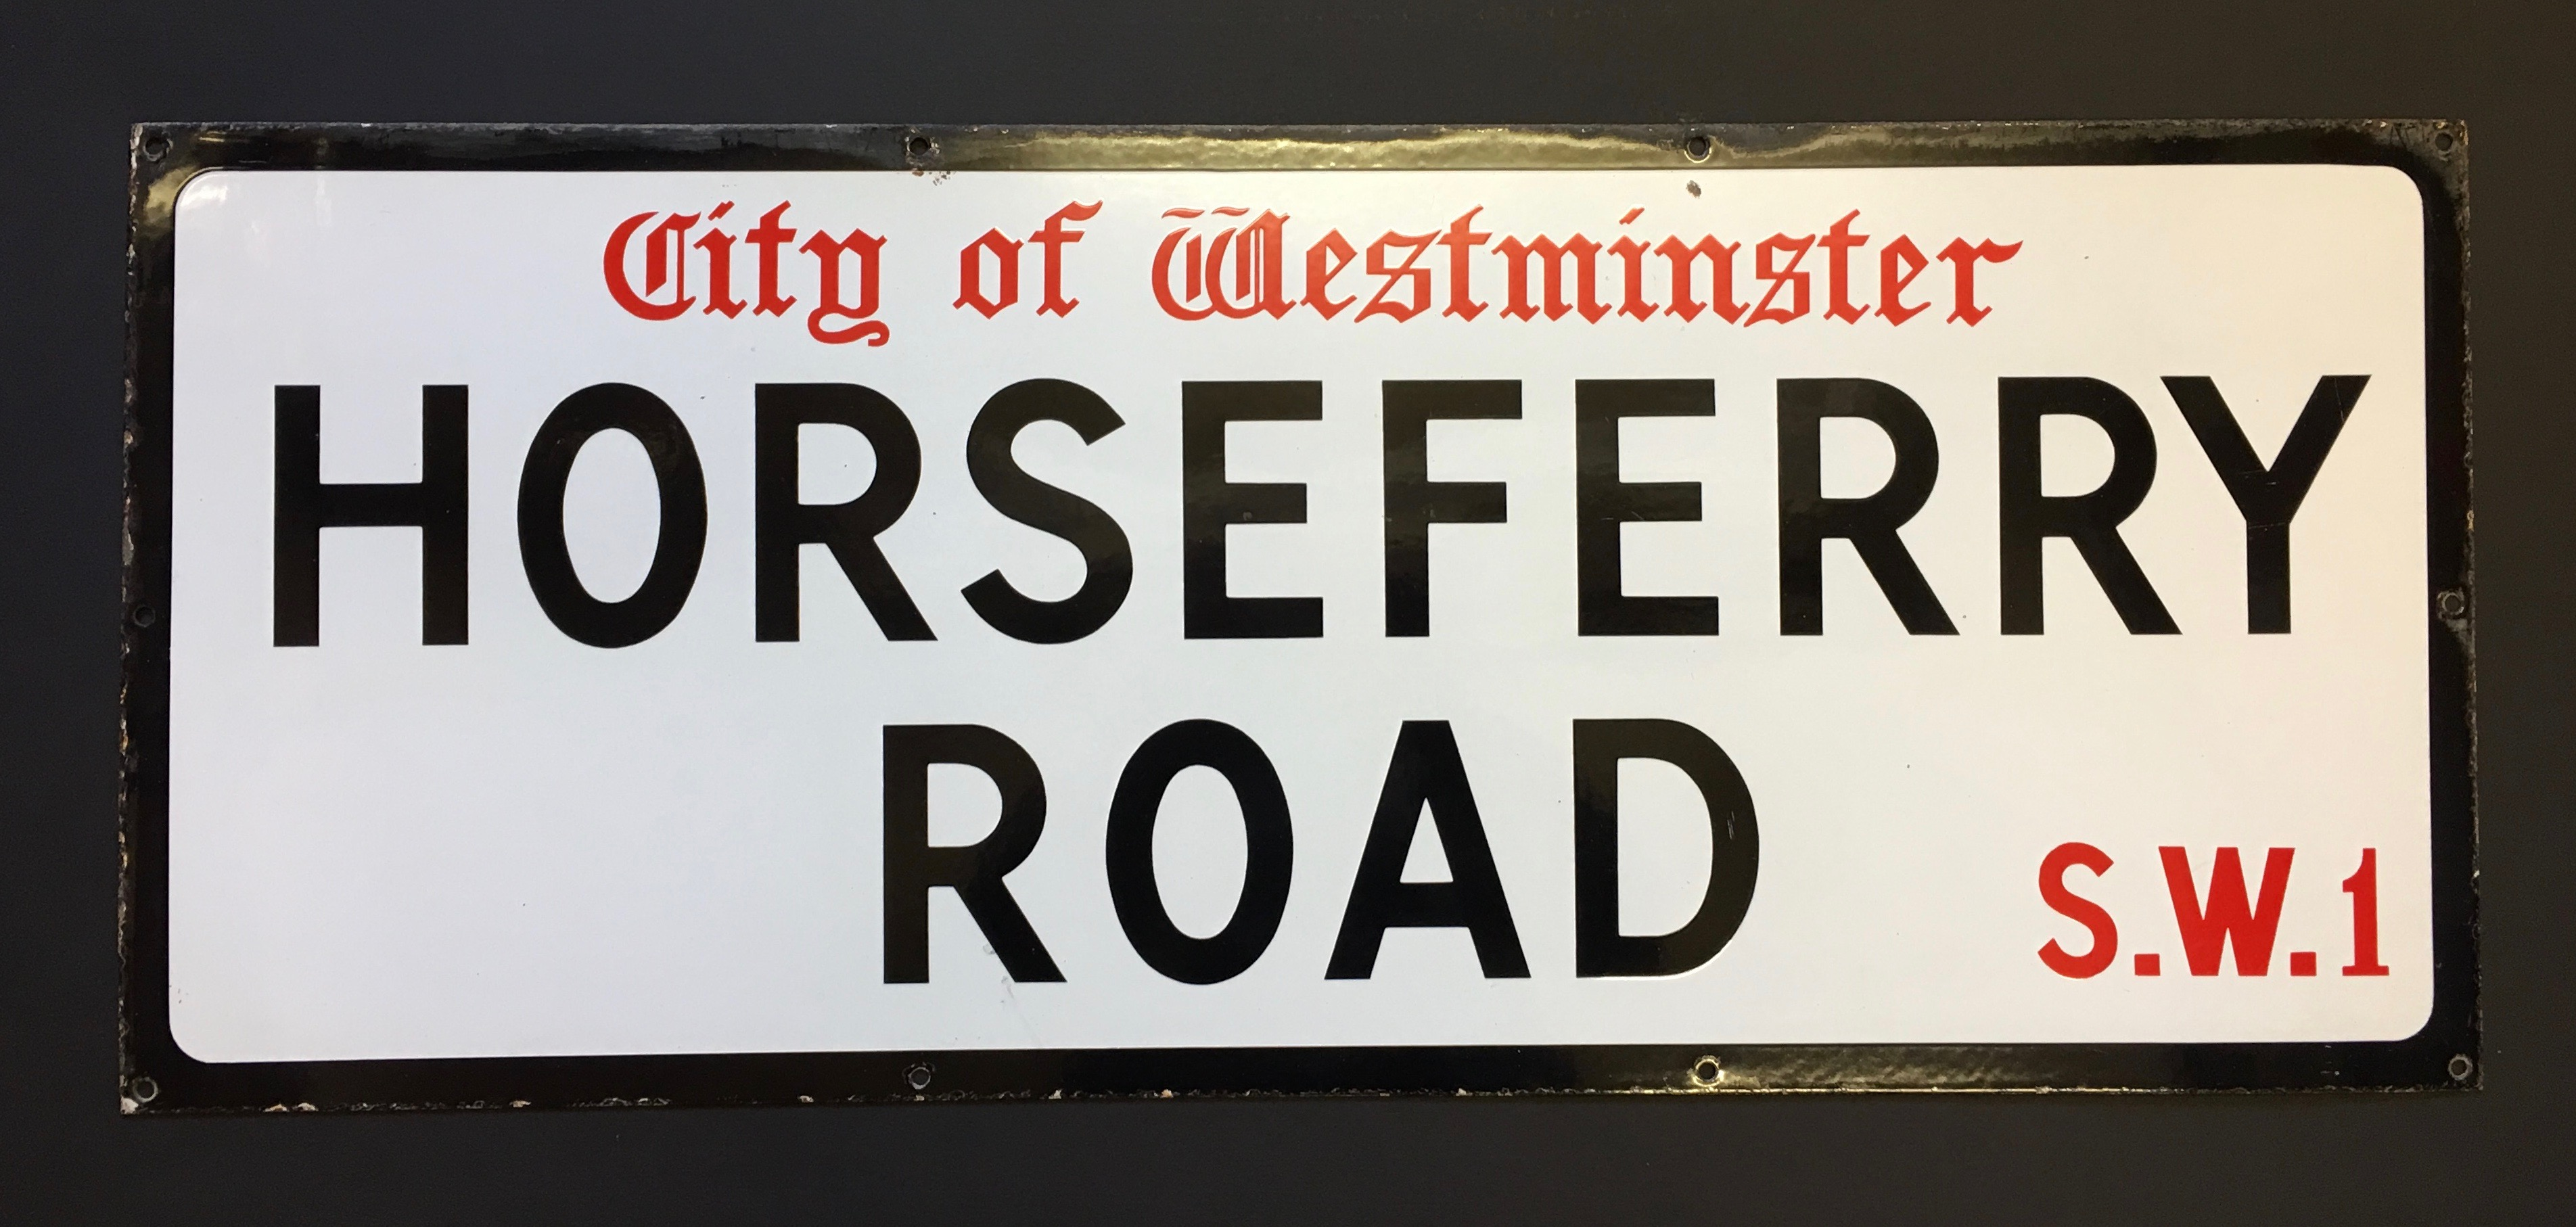 Horseferry Road, Westminster SW1.